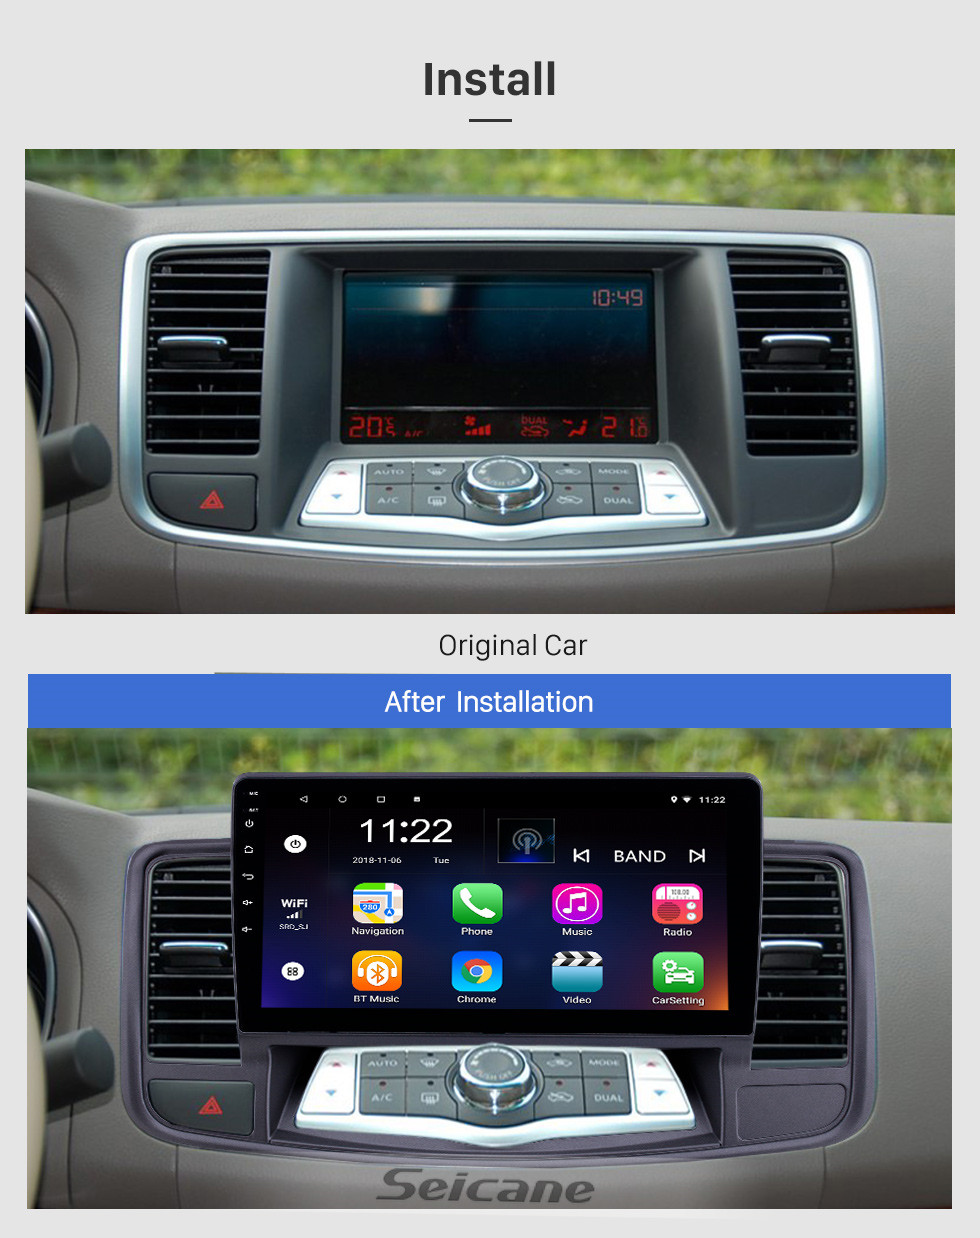 Seicane 2009-2013 Nissan Old Teana Android 10.0 Touchscreen 10.1 inch Head Unit Bluetooth GPS Navigation Radio with AUX WIFI support OBD2 DVR SWC Carplay